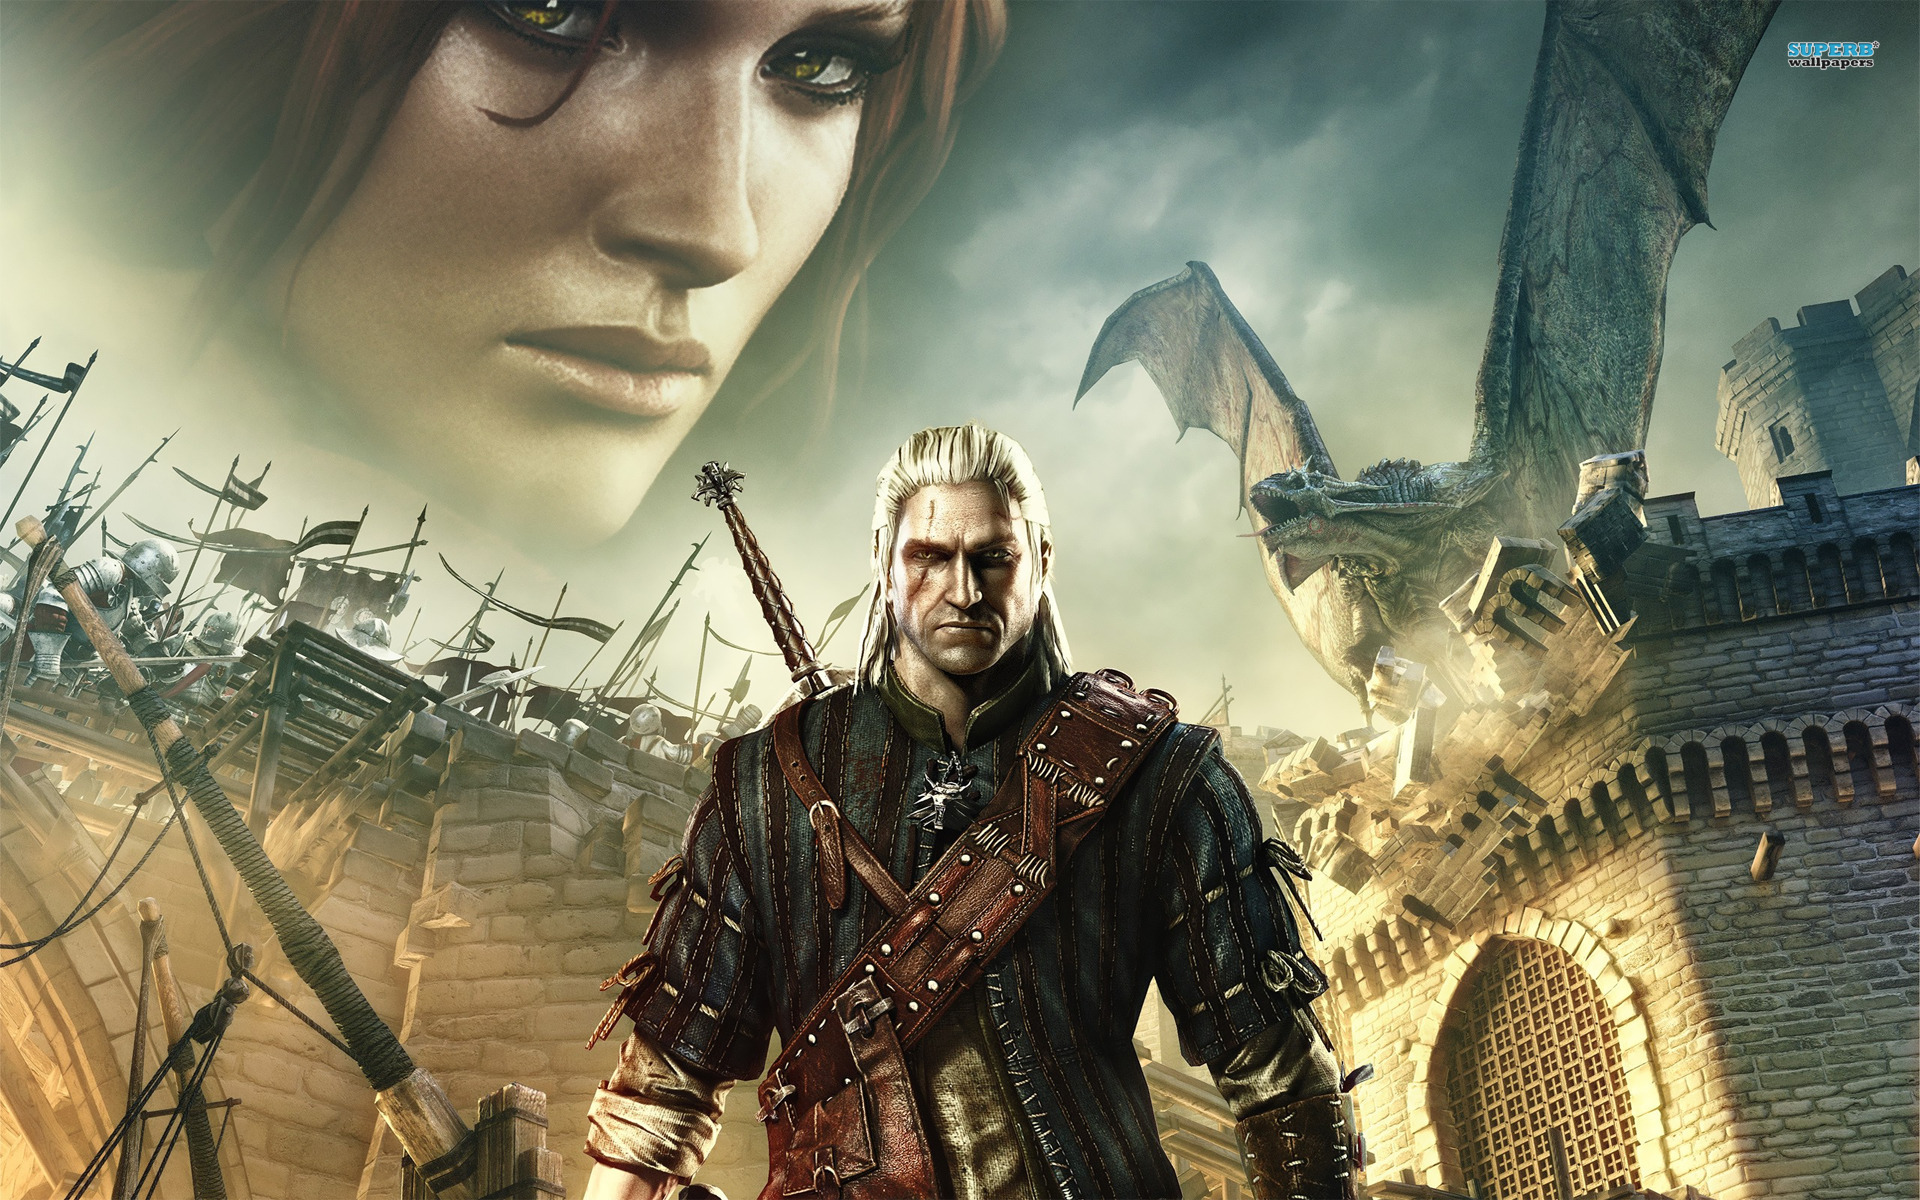 The Witcher 2 Assasins of Kings